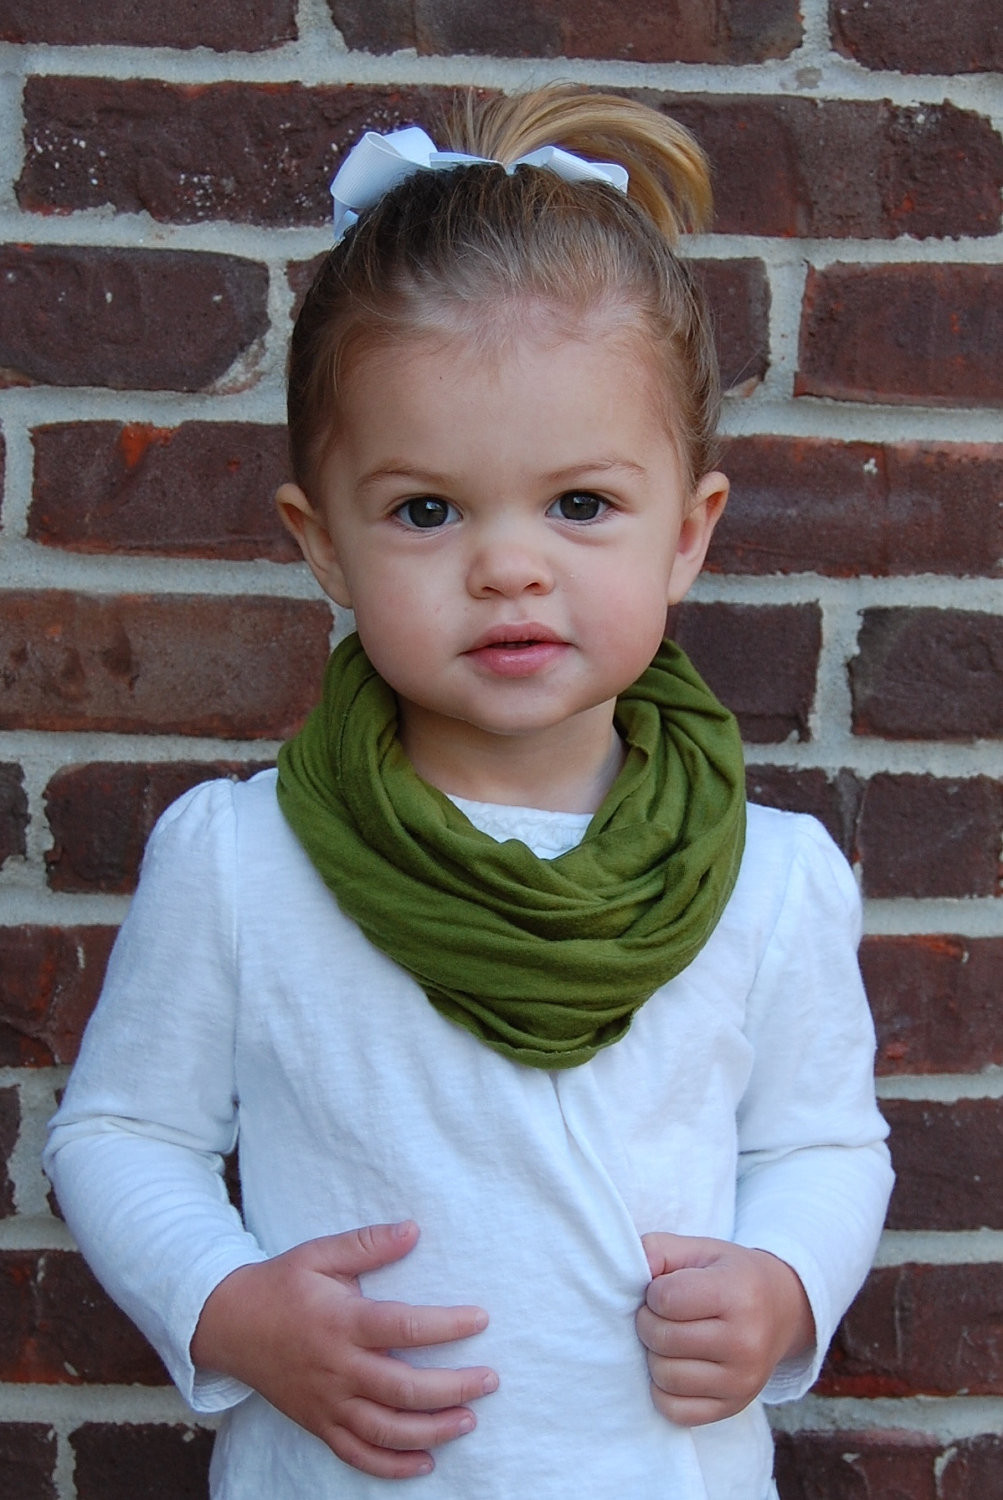 Toddler Scarf Elegant Additional Colors toddler Infinity Scarf Of Attractive 43 Pics toddler Scarf